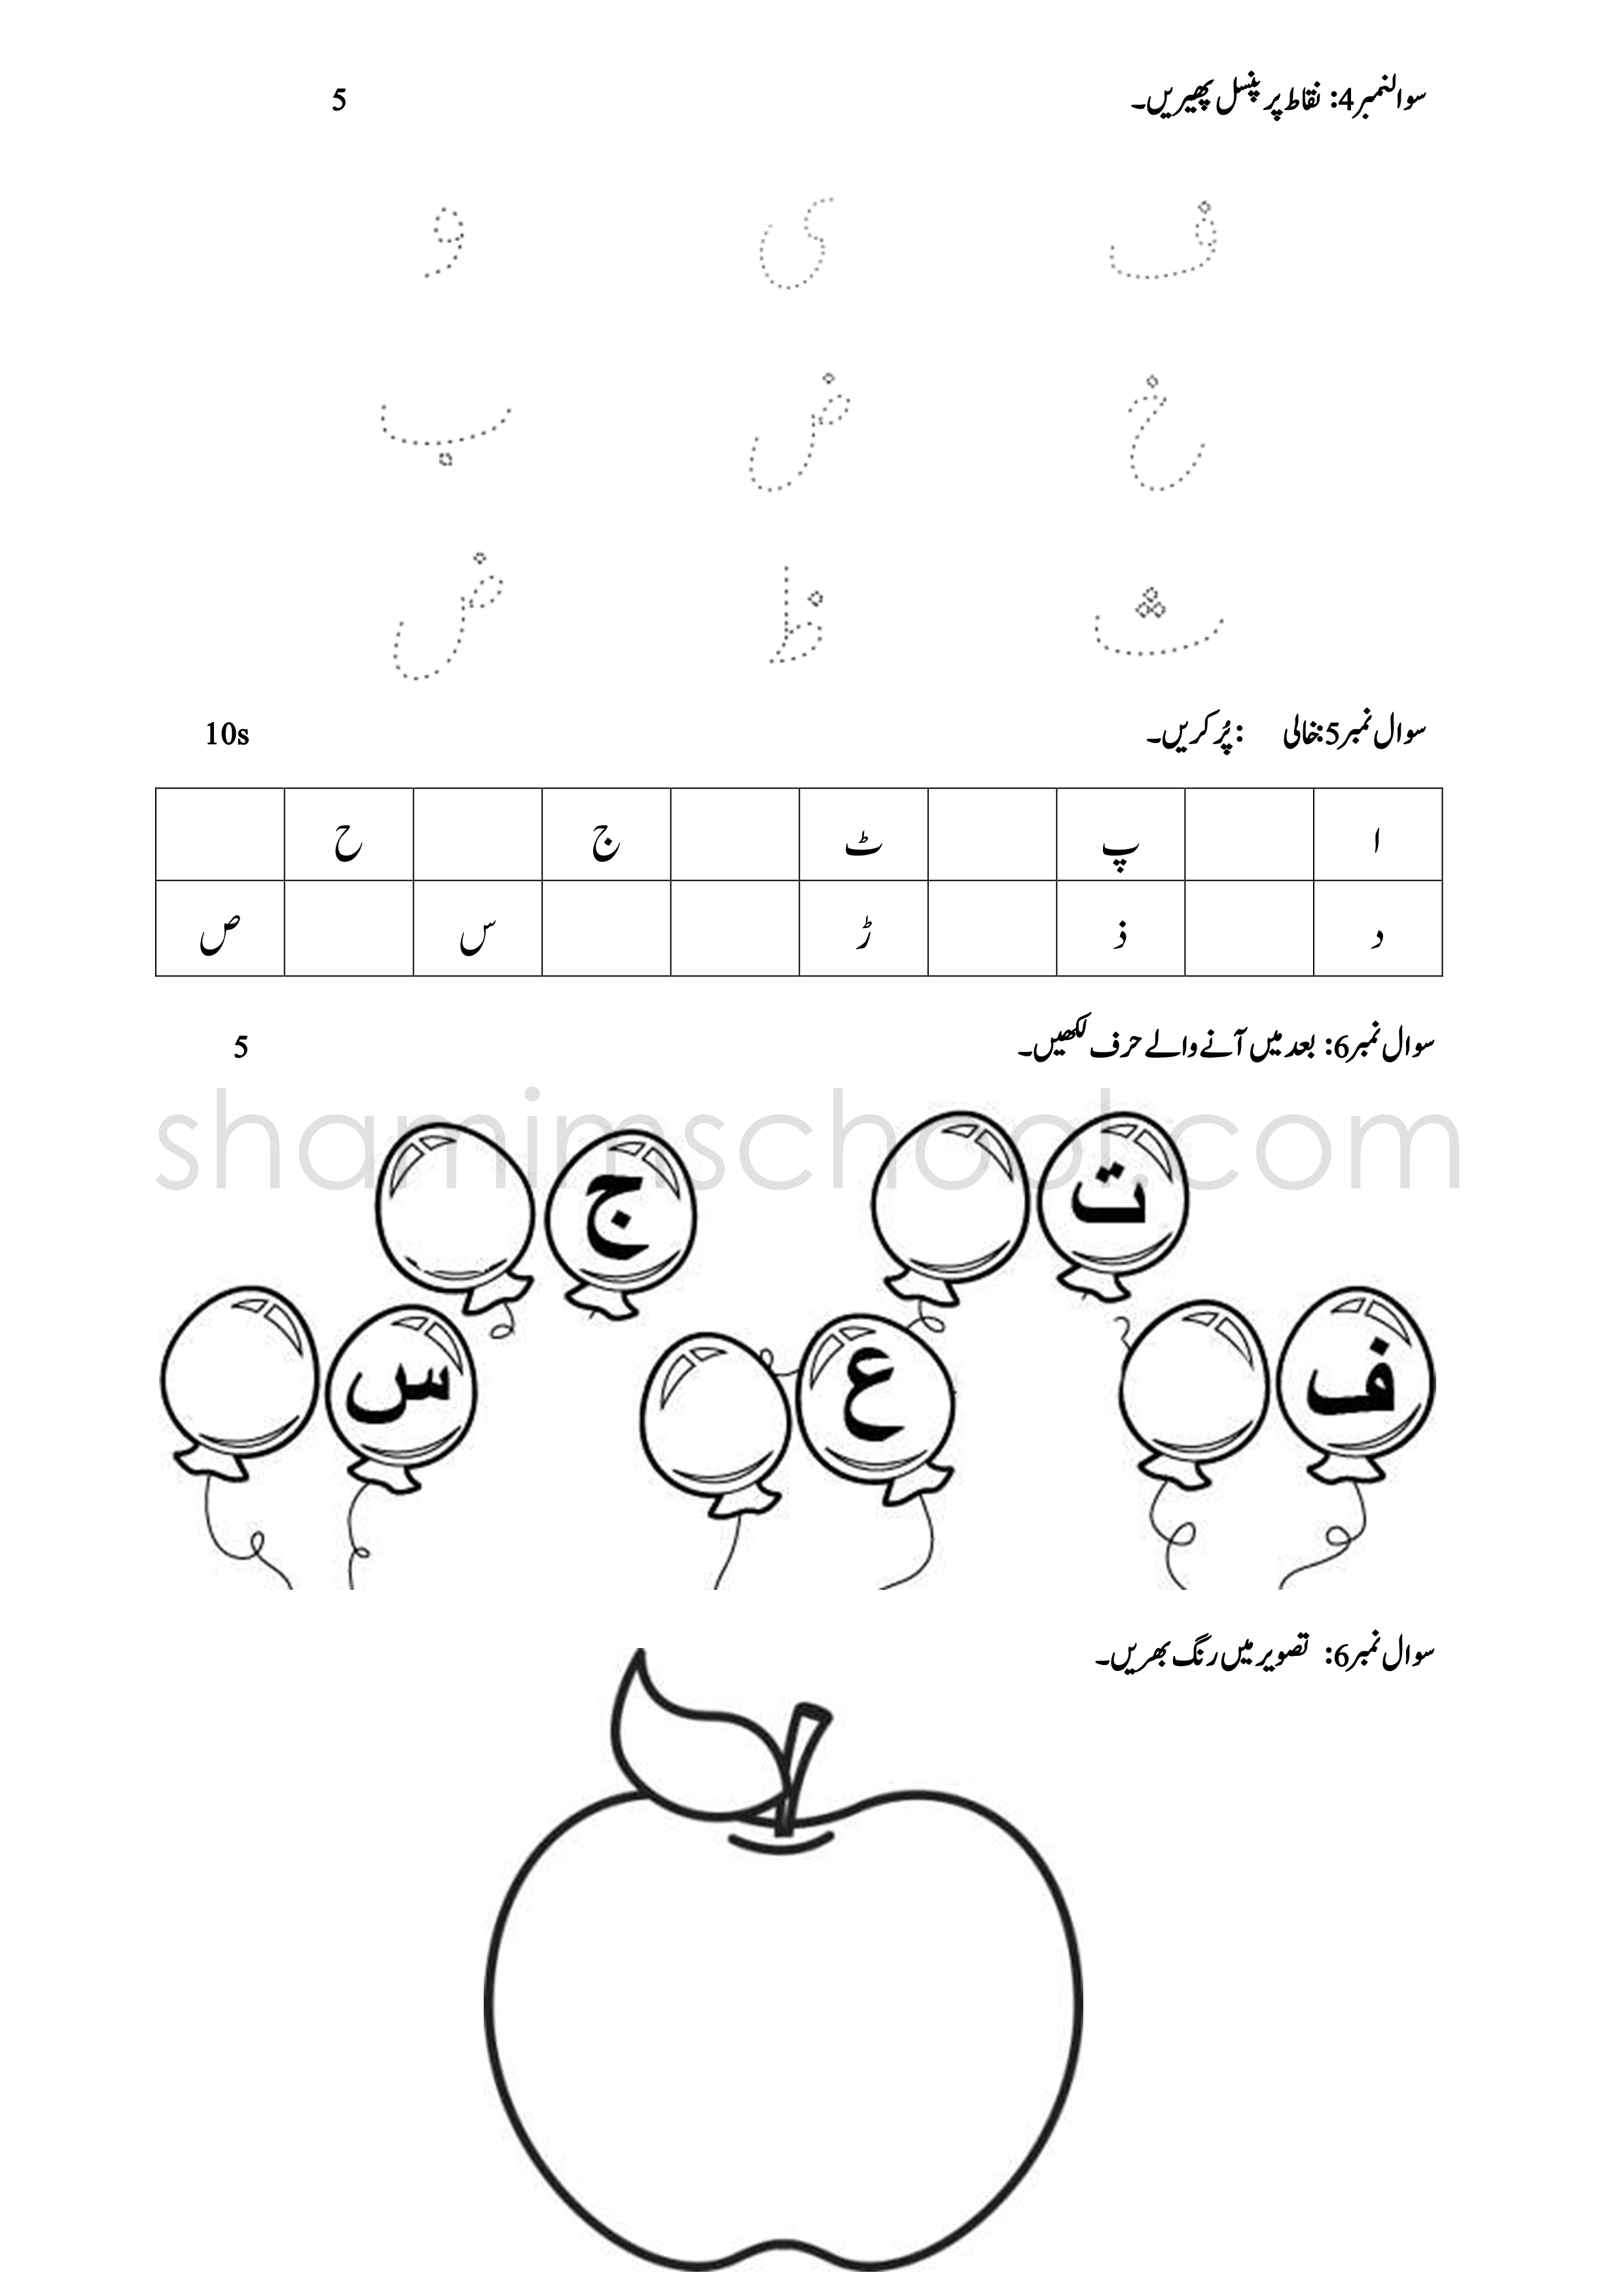 download free examination sample papers for class playgroup 3